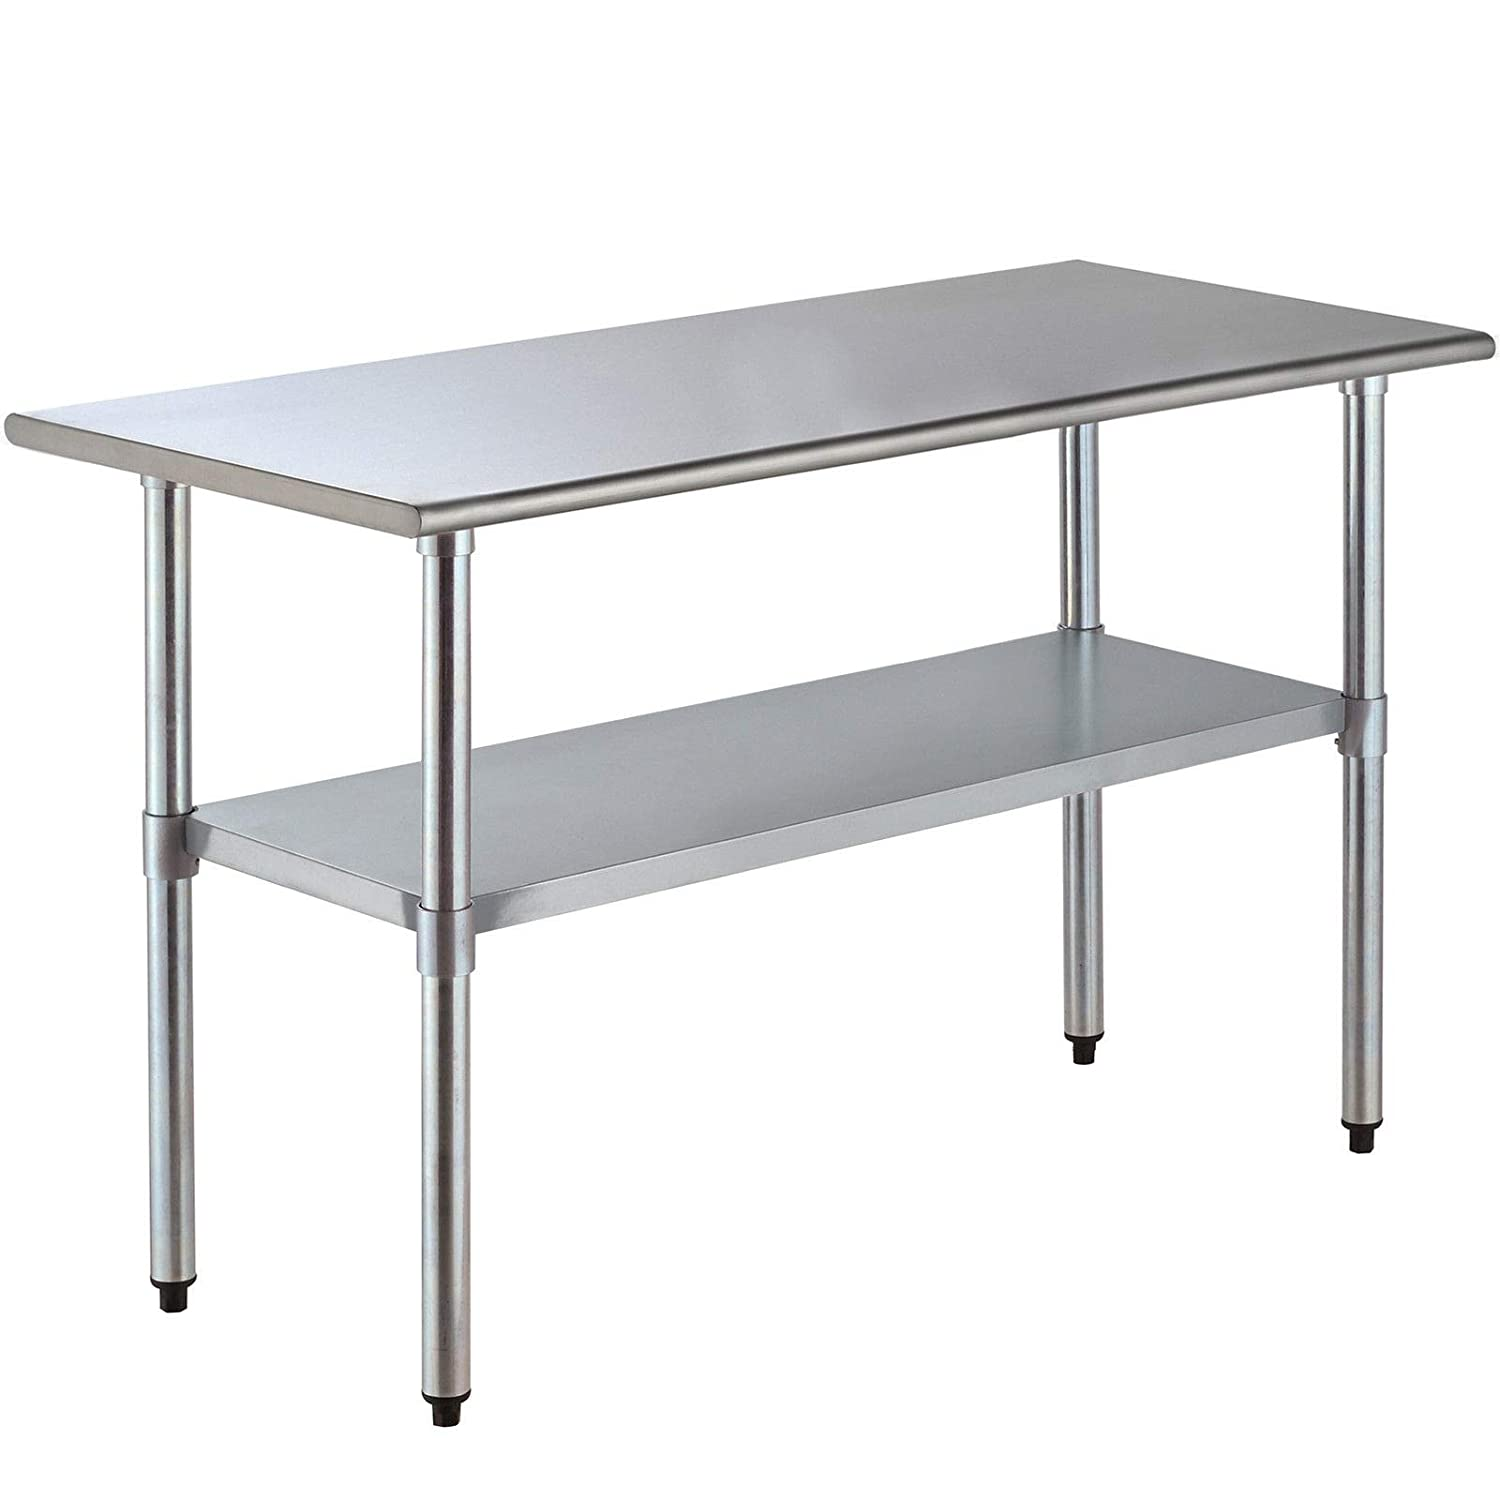 Stainless Steel Catering Kitchen Work Table Bench With Extra 2 Tier Top Shelf